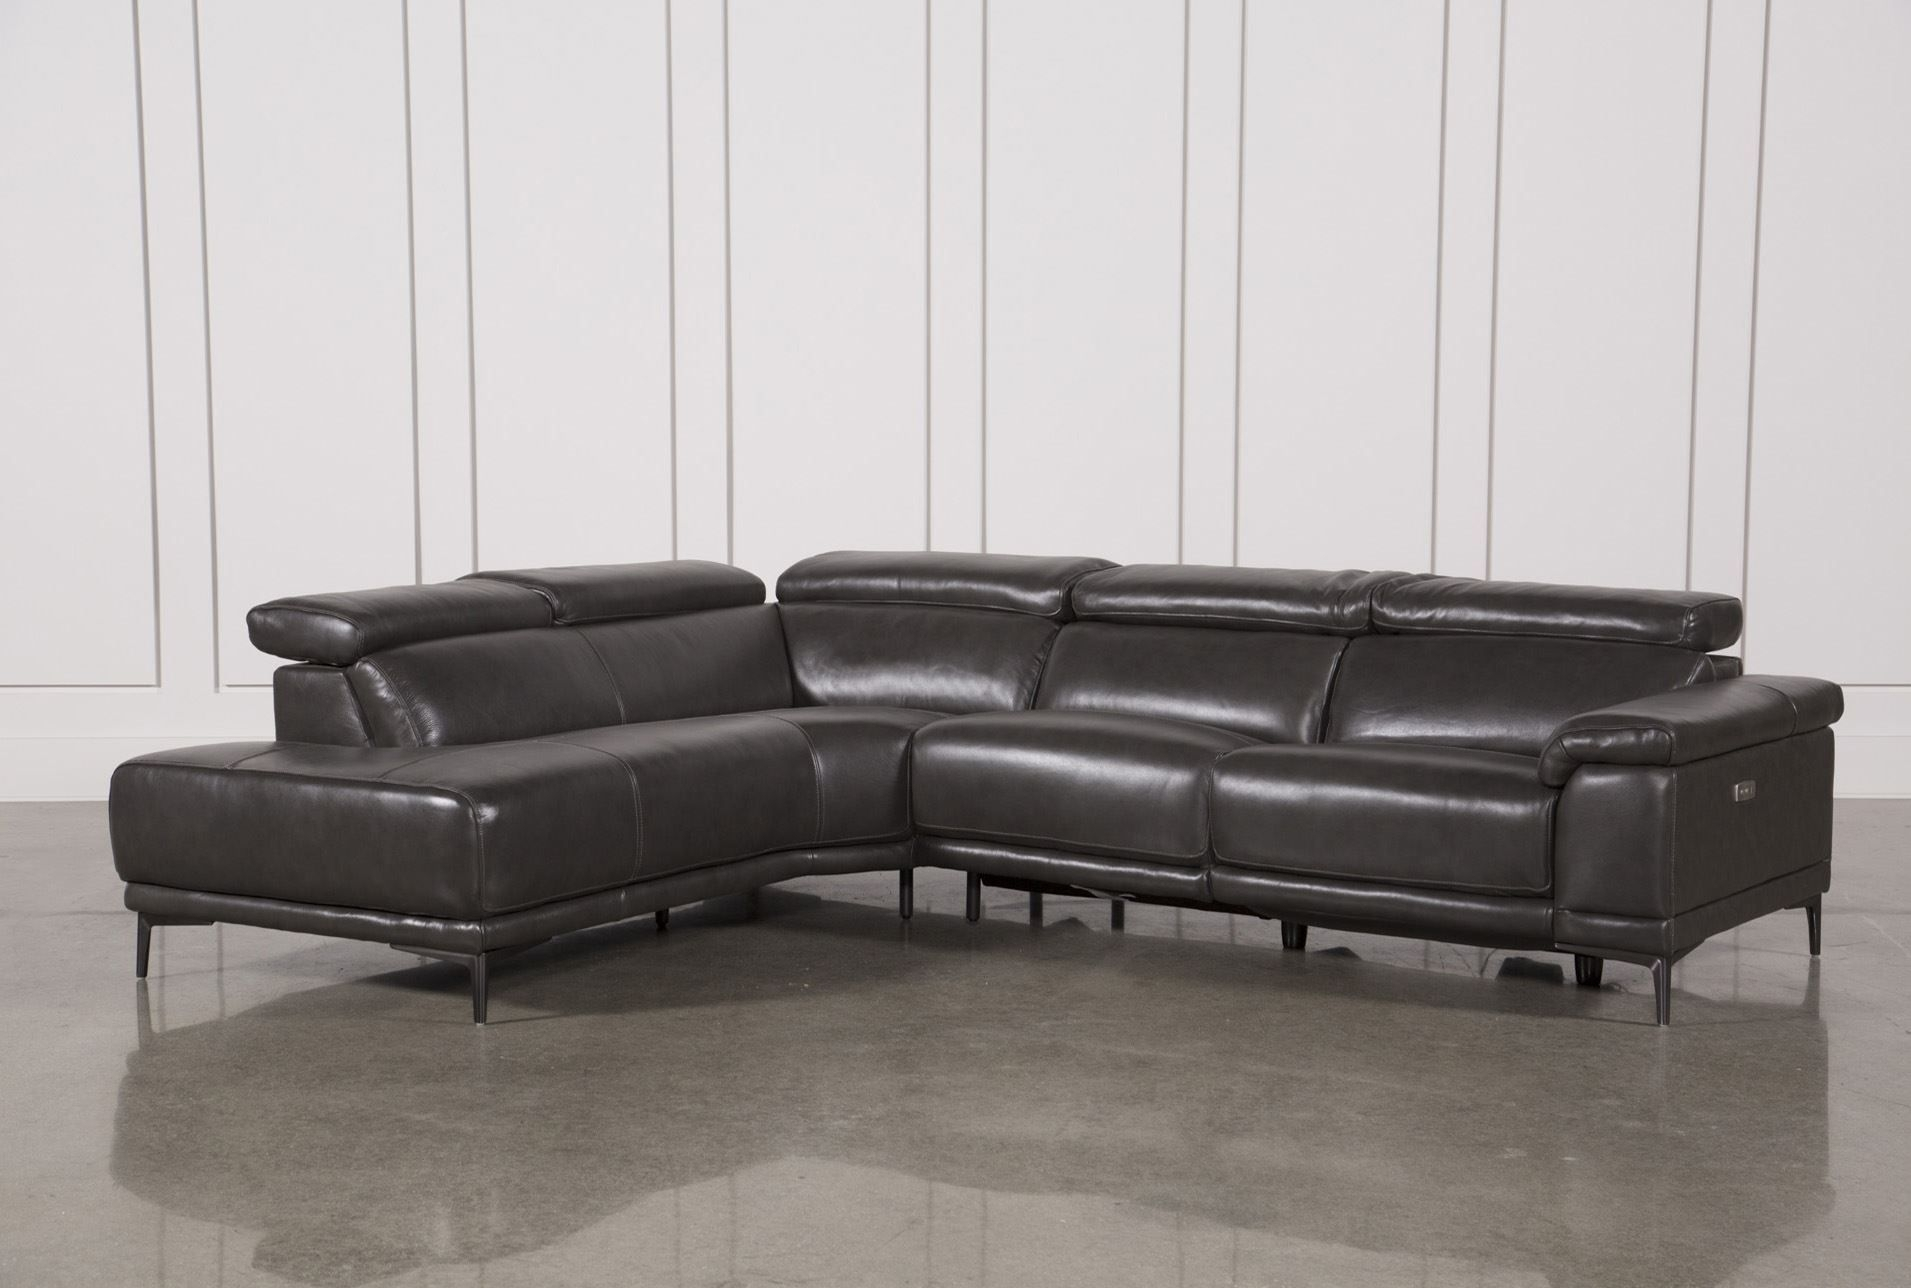 Tatum Dark Grey 2 Piece Sectional W/laf Chaise | Living Room for Calder Grey 6 Piece Manual Reclining Sectionals (Image 26 of 30)